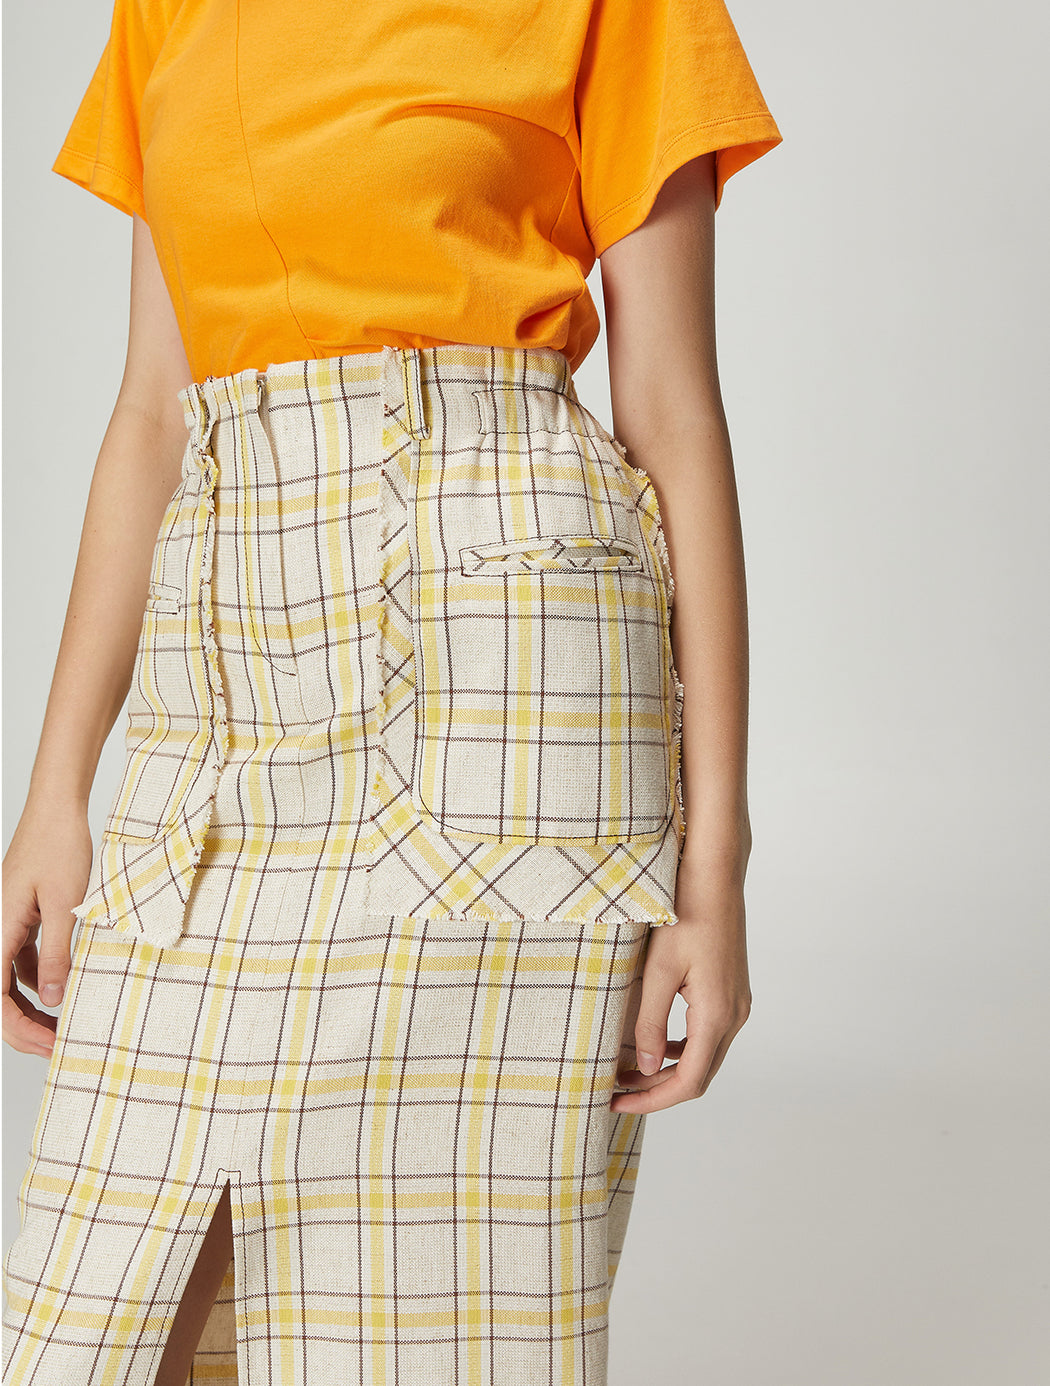 Ellie Skirt